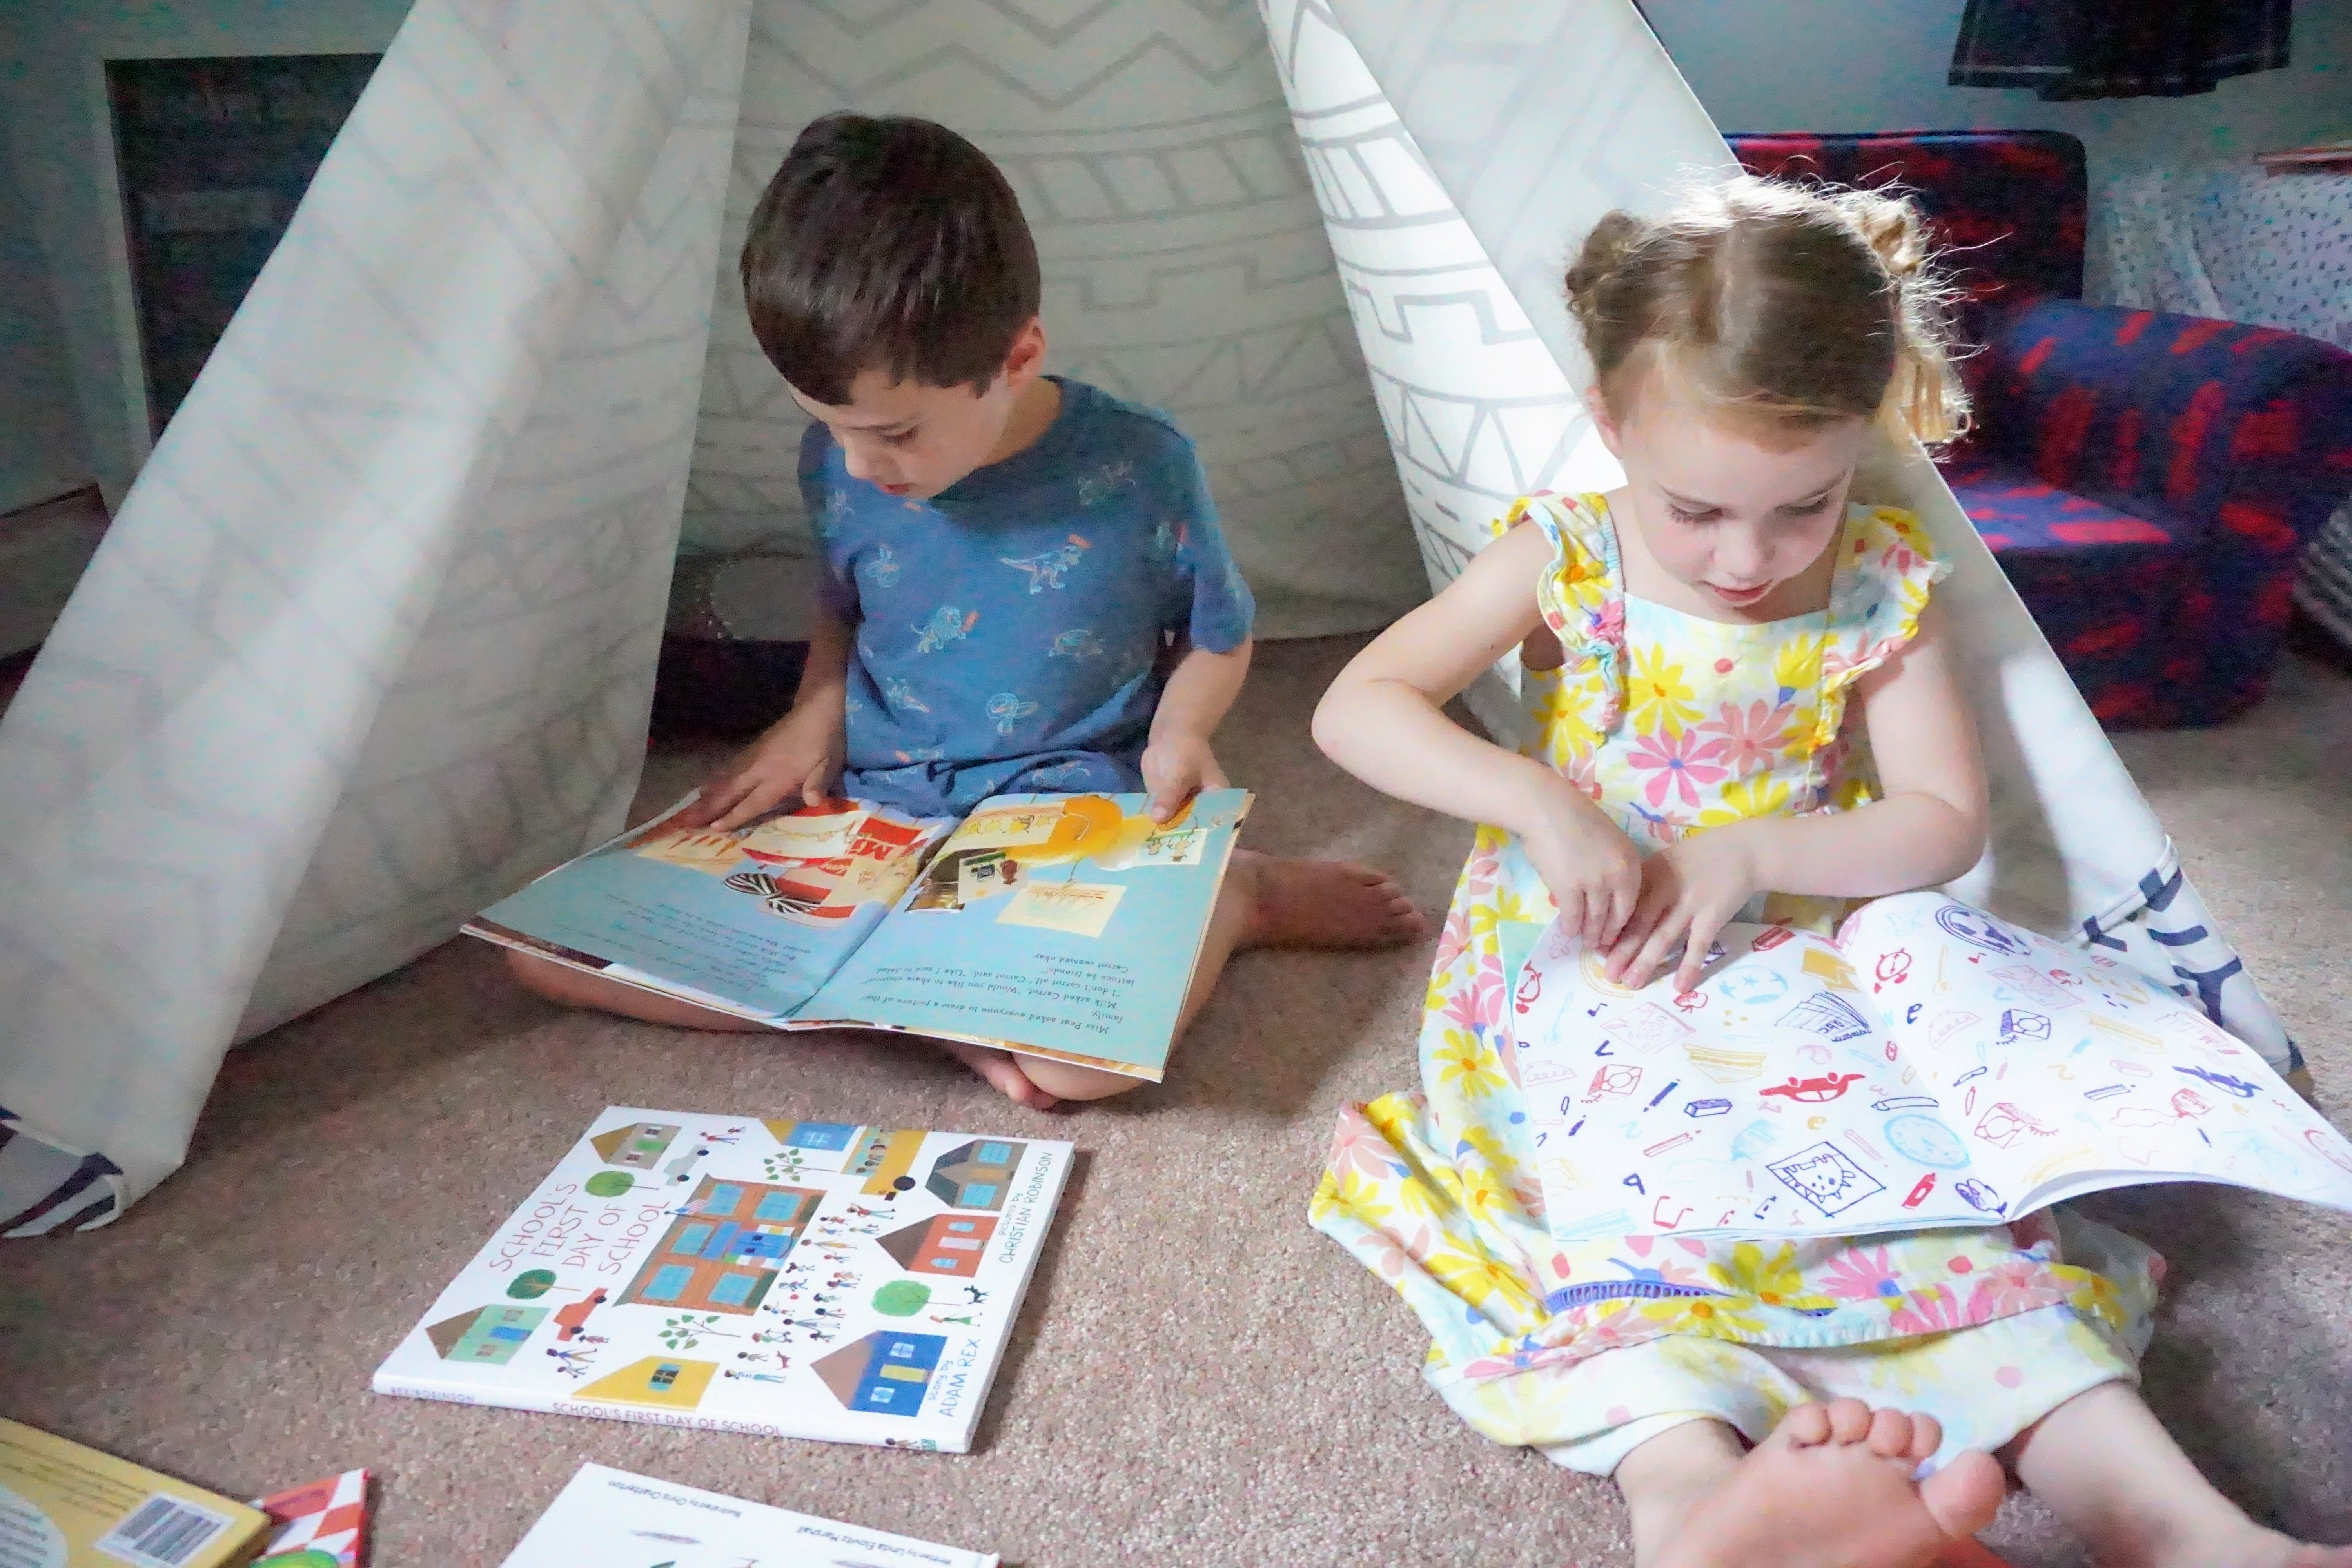 Reece and Kat reading back to school books